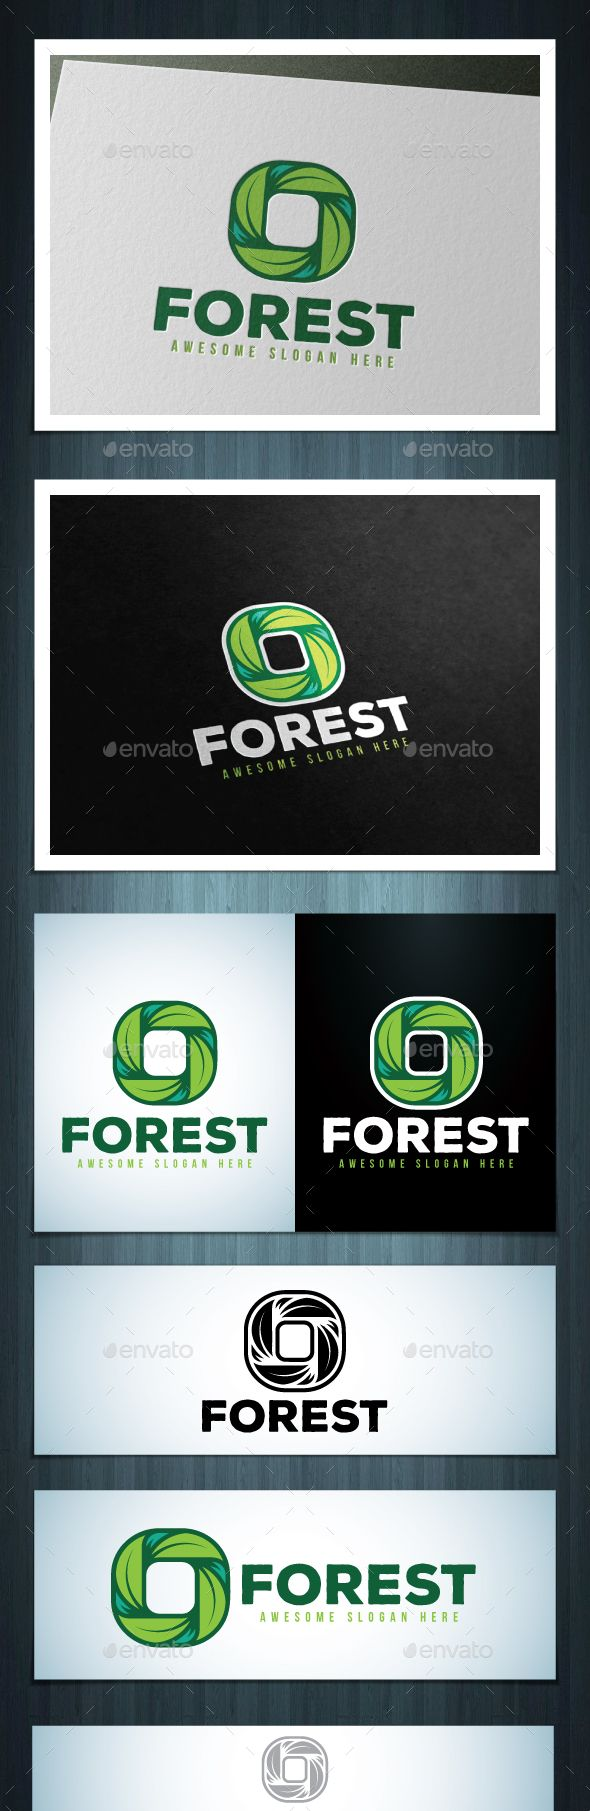 Forest Logo — Photoshop PSD #progress #eco • Available here → https://graphicriver.net/item/forest-logo/17327607?ref=pxcr